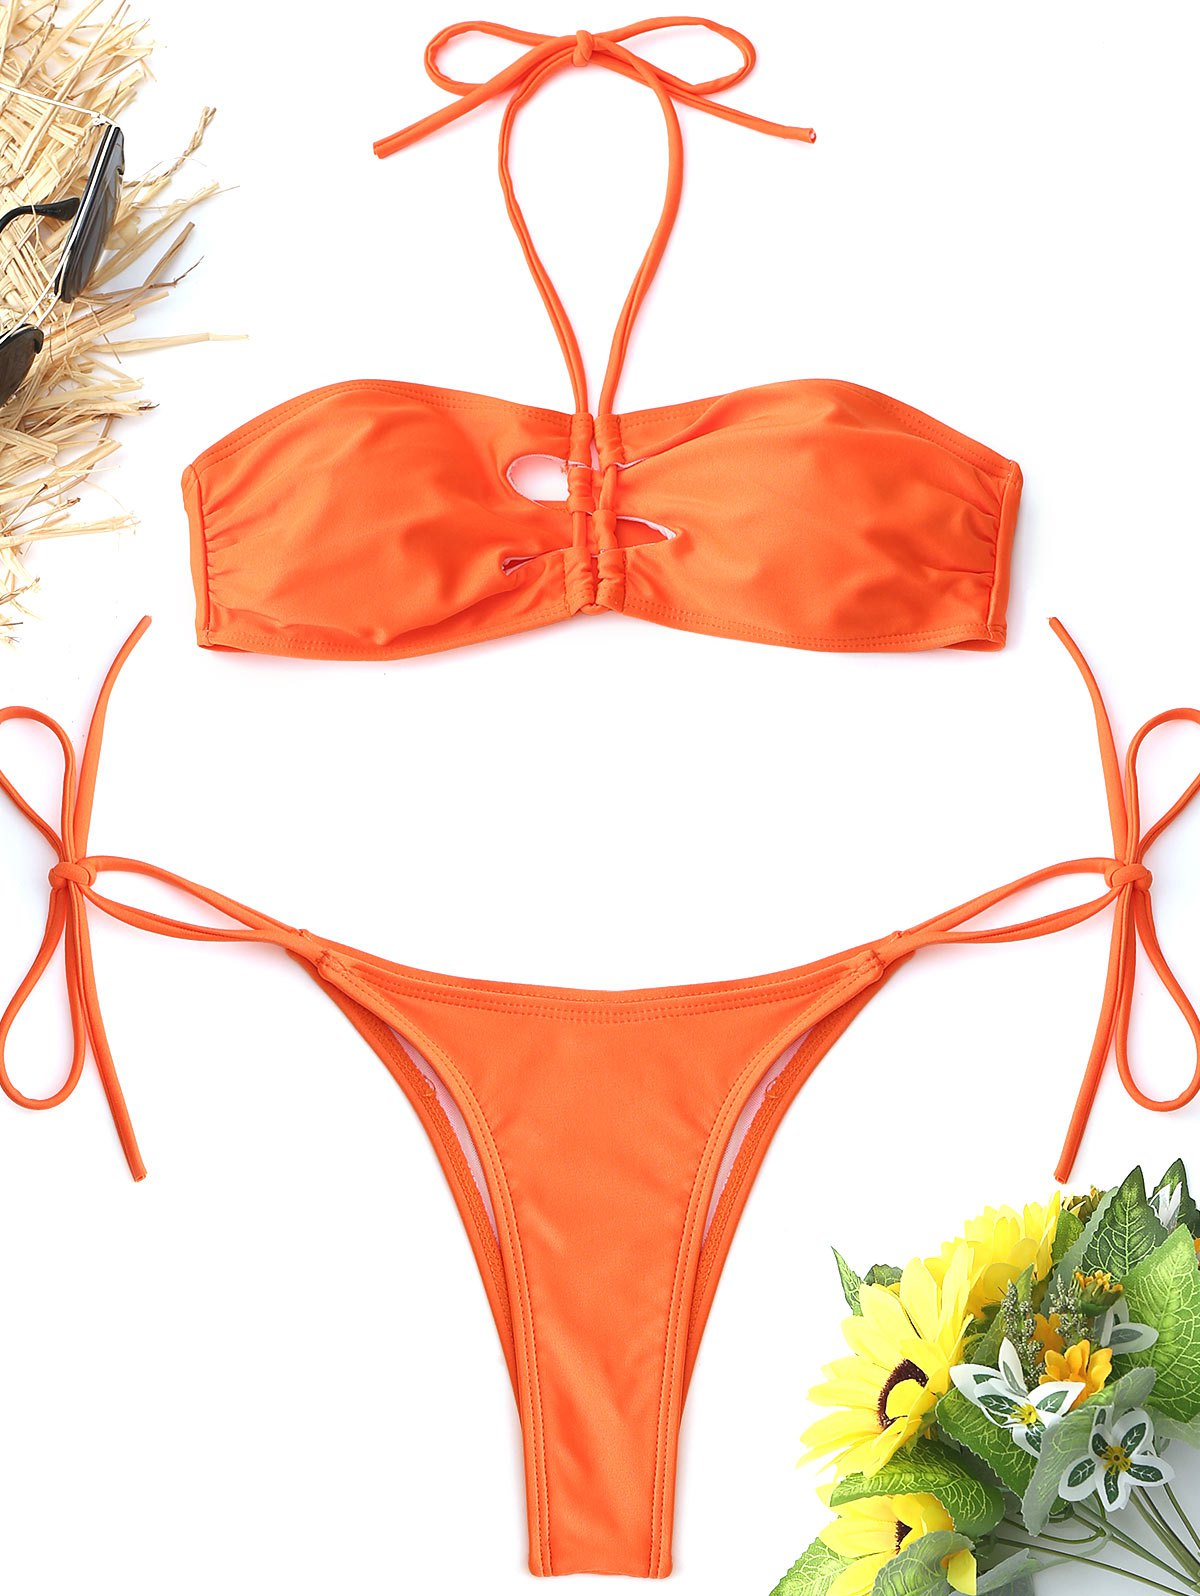 99e6dca5418 60% OFF] Halter High Cut String Bikini Set | Rosegal